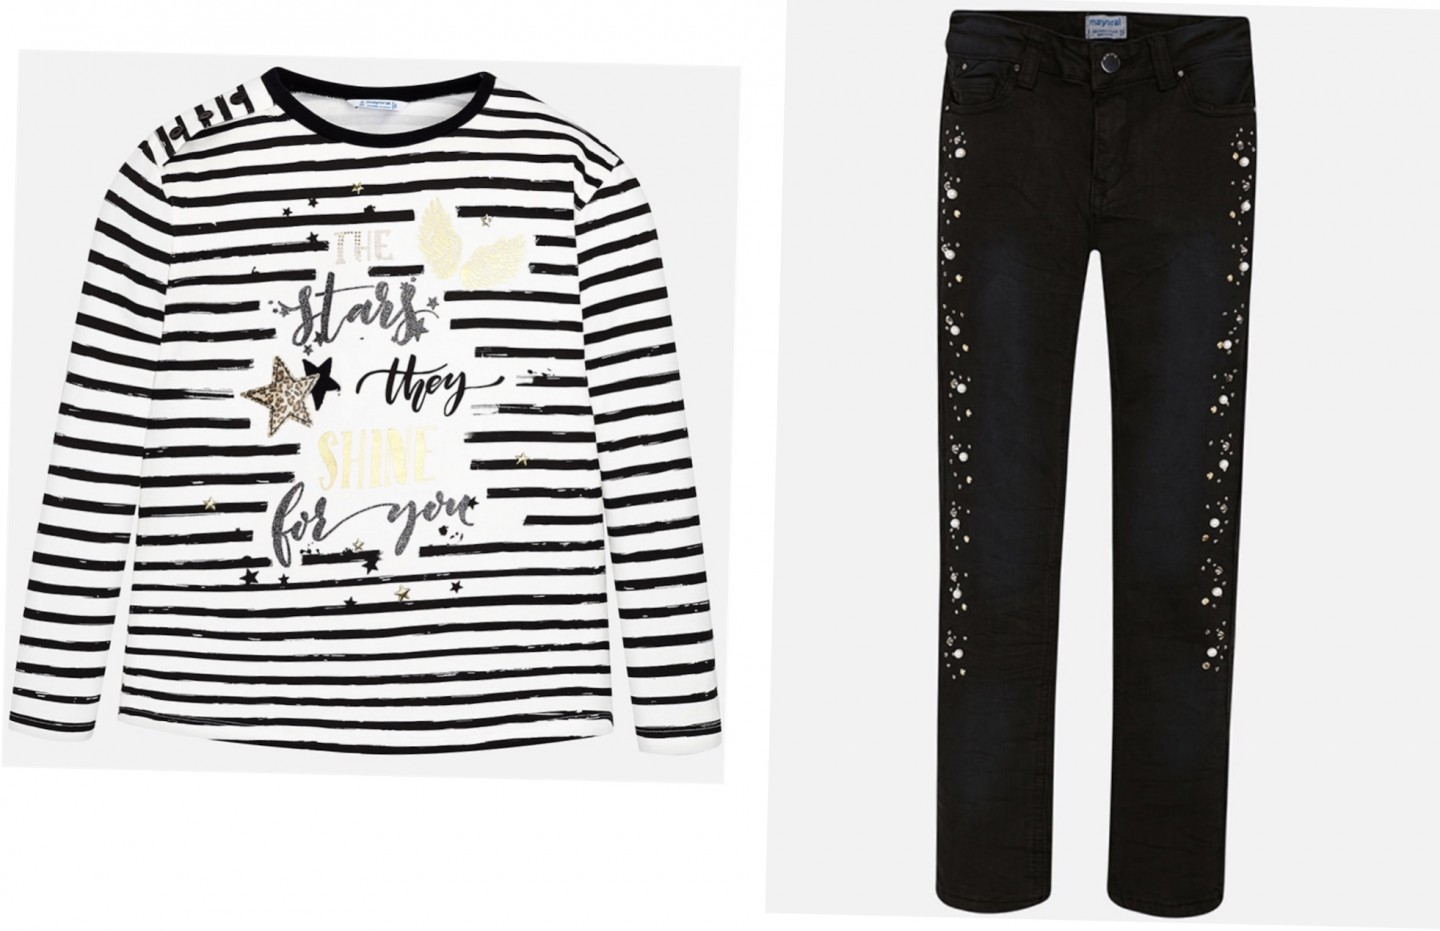 MAYORAL THE STARS THEY SHINE SHIRT AND LONG TROUSERS WITH APPLIQUÉS